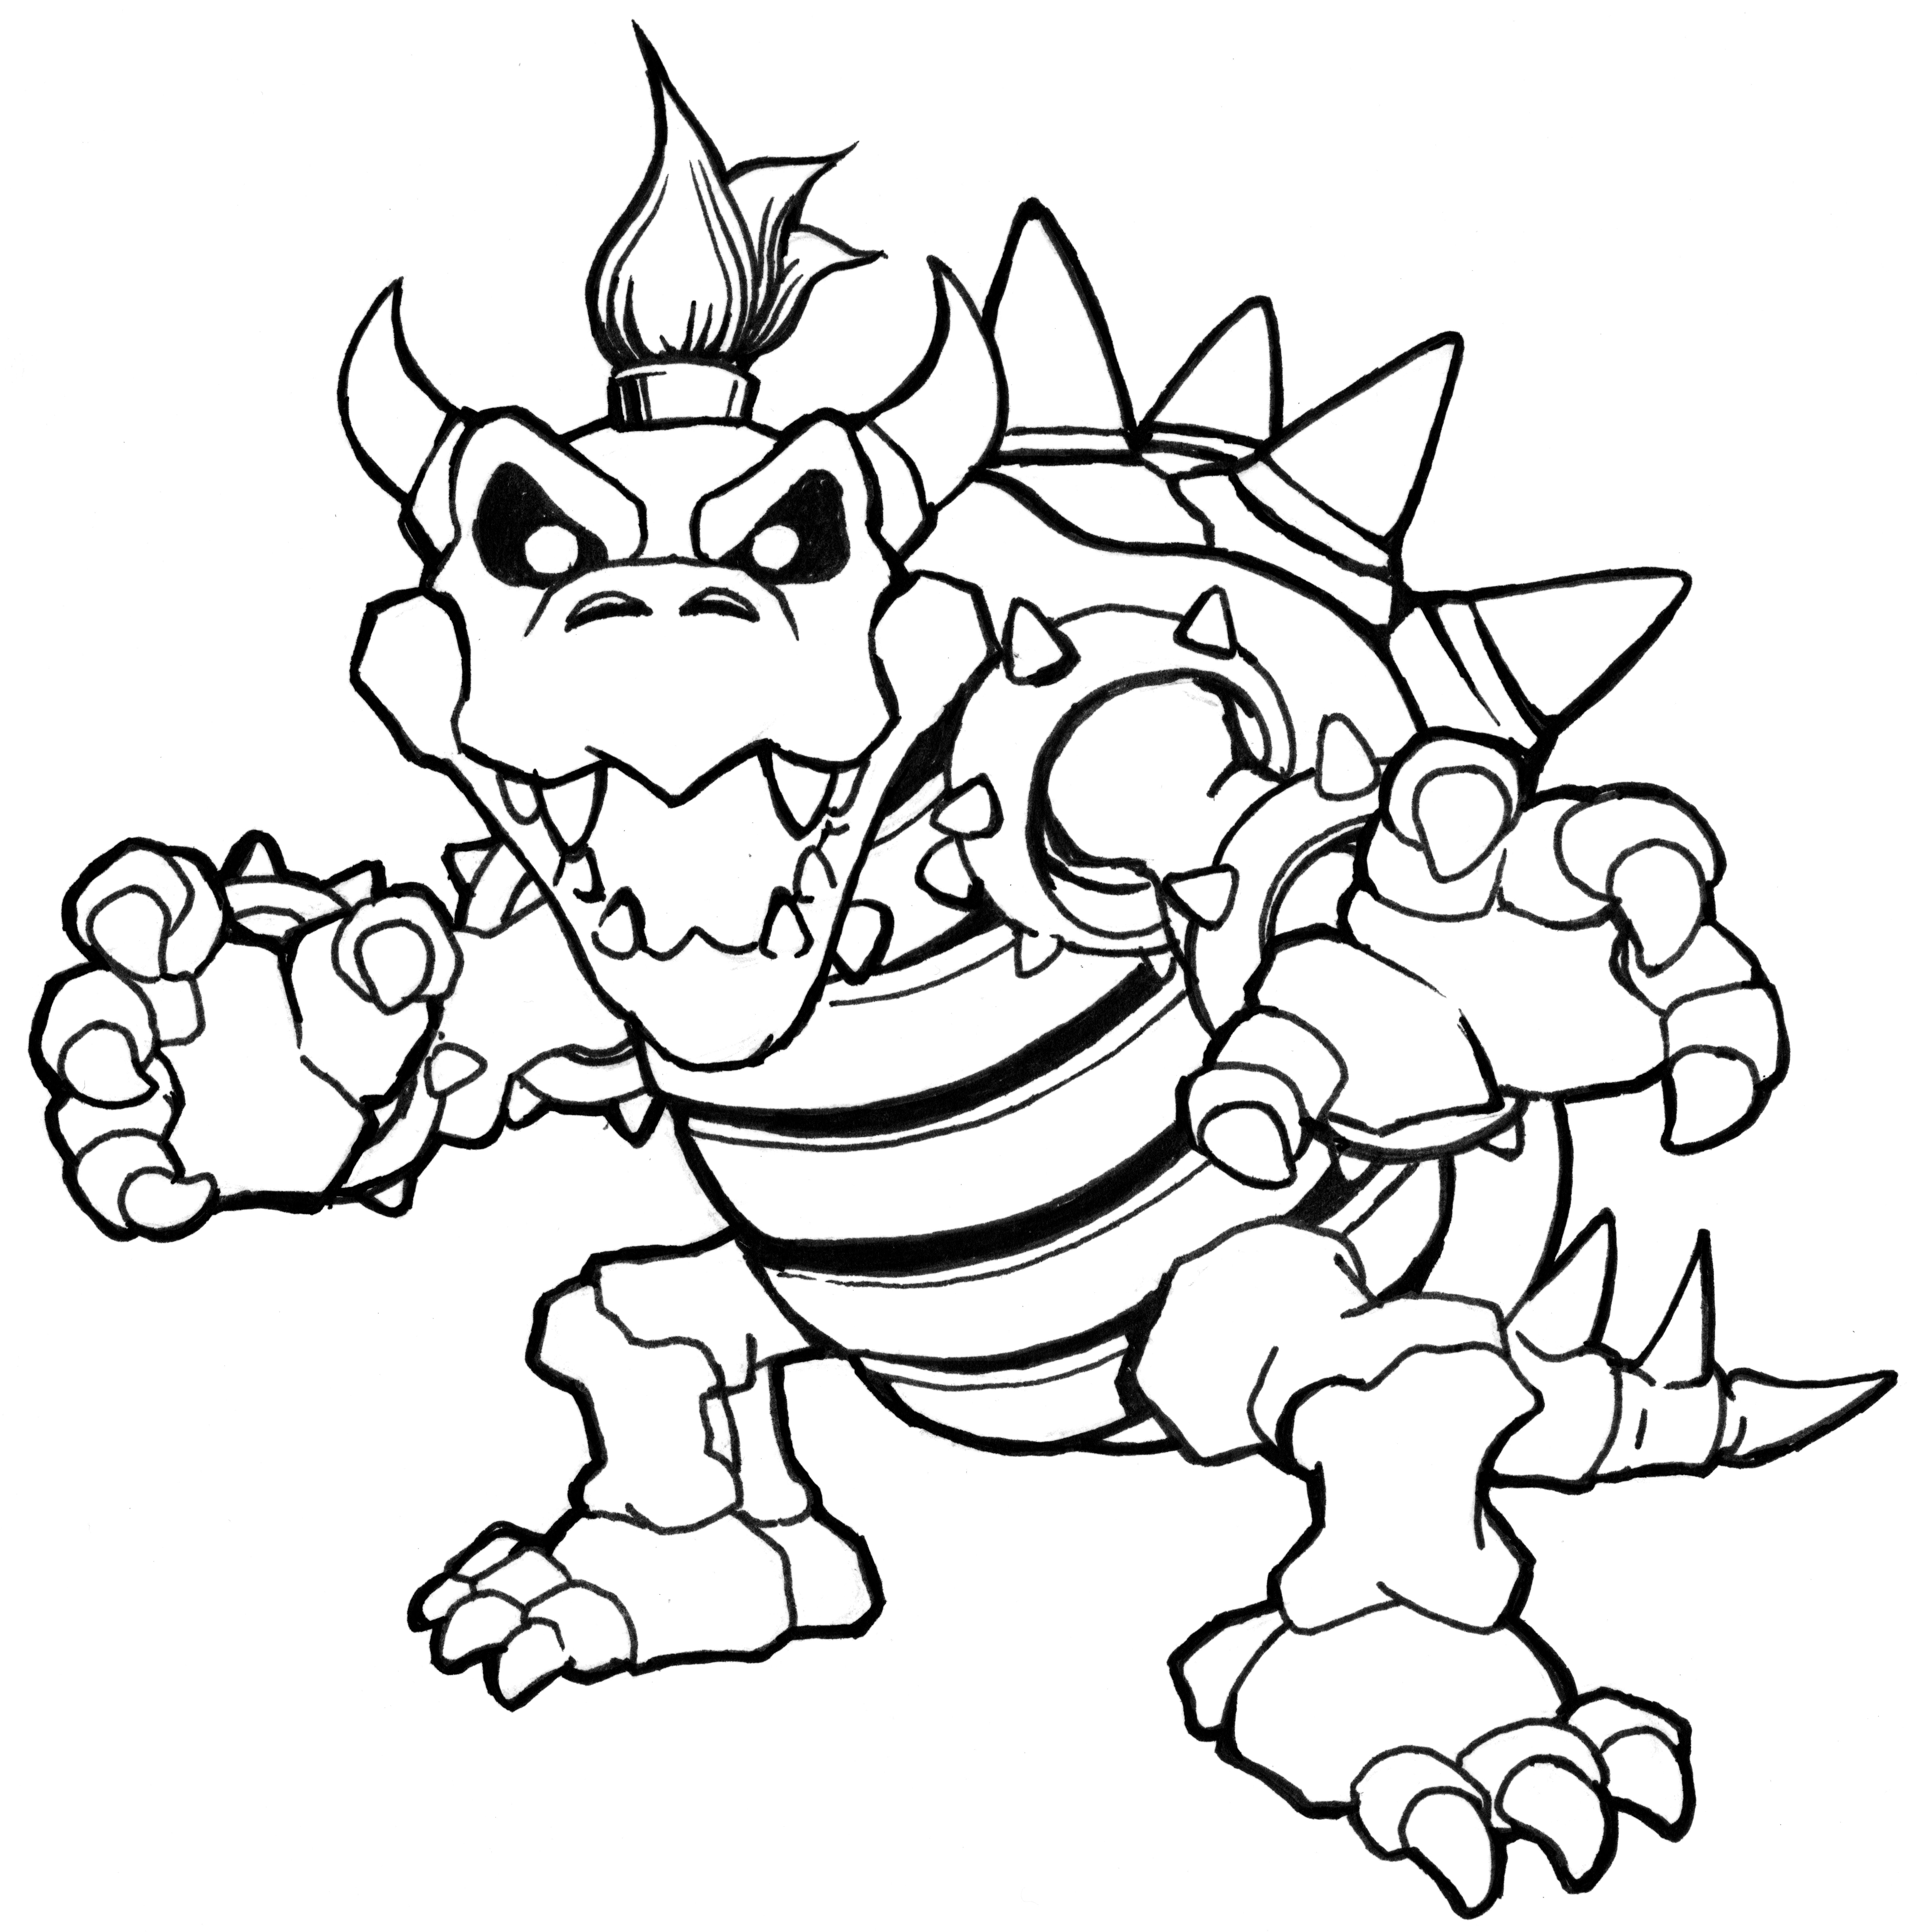 bowser coloring page # 1